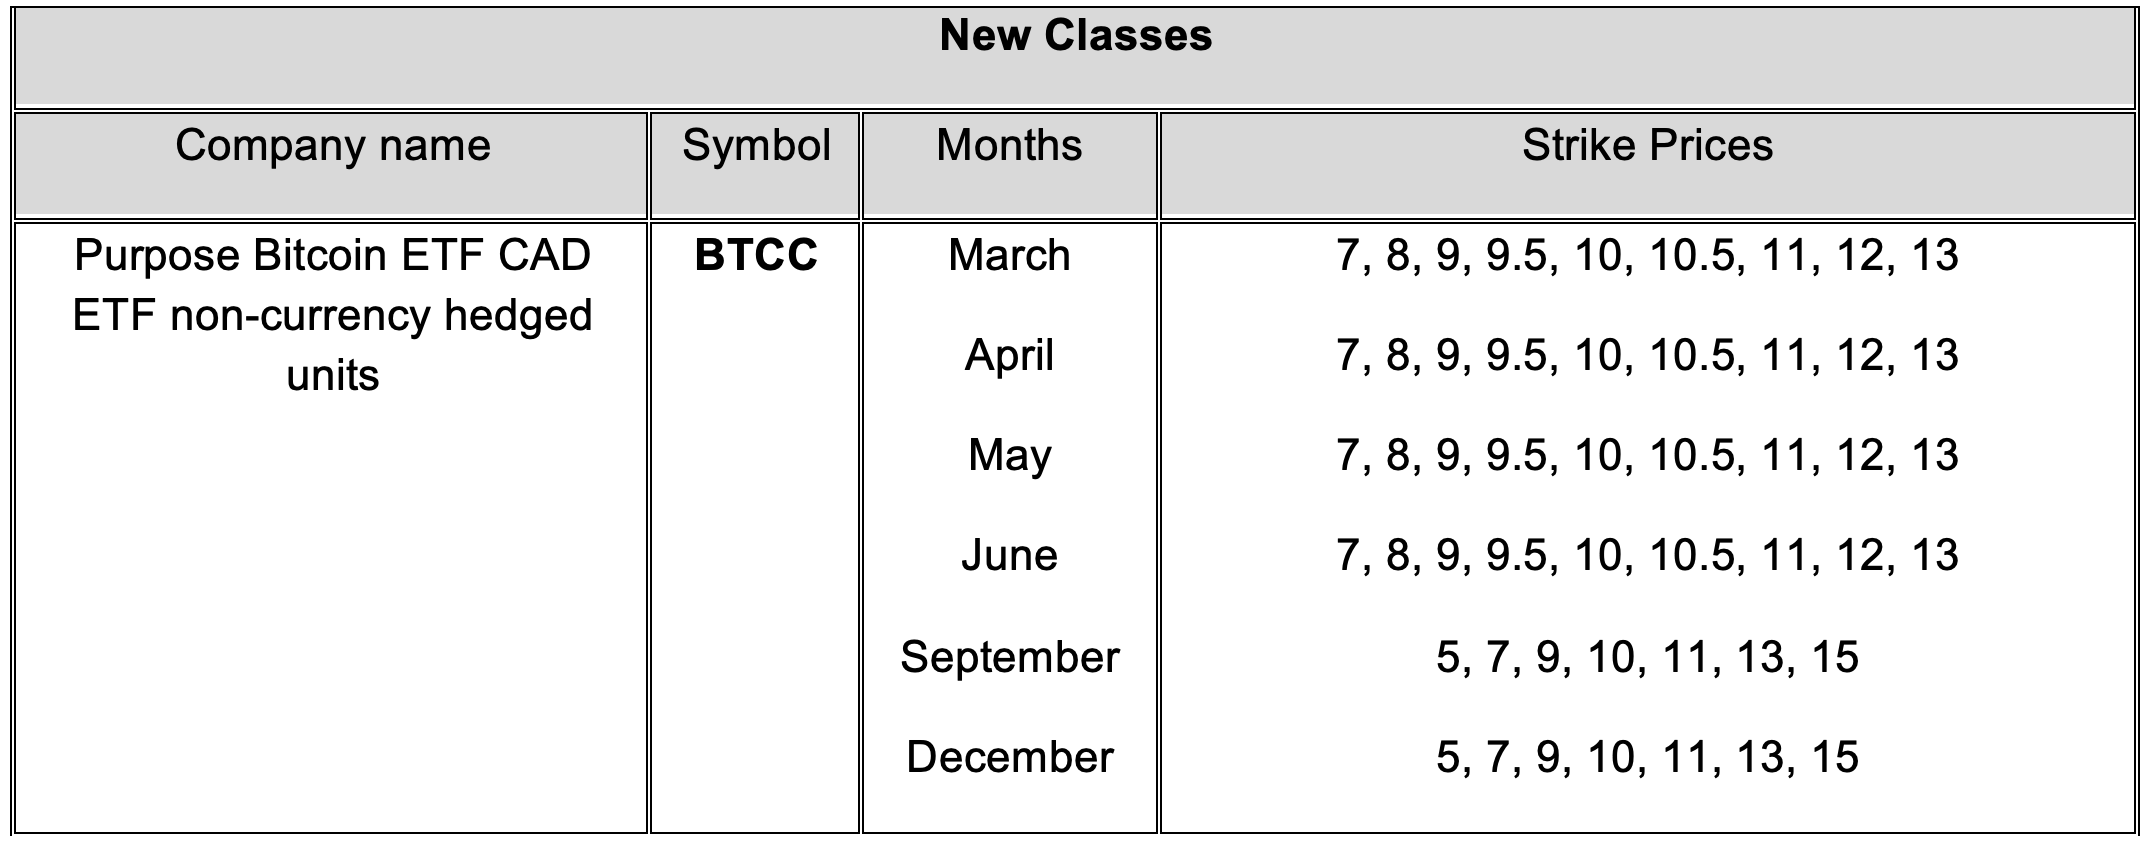 Bitcoin ETF CAD ETF (BTCC) non-currency hedged units